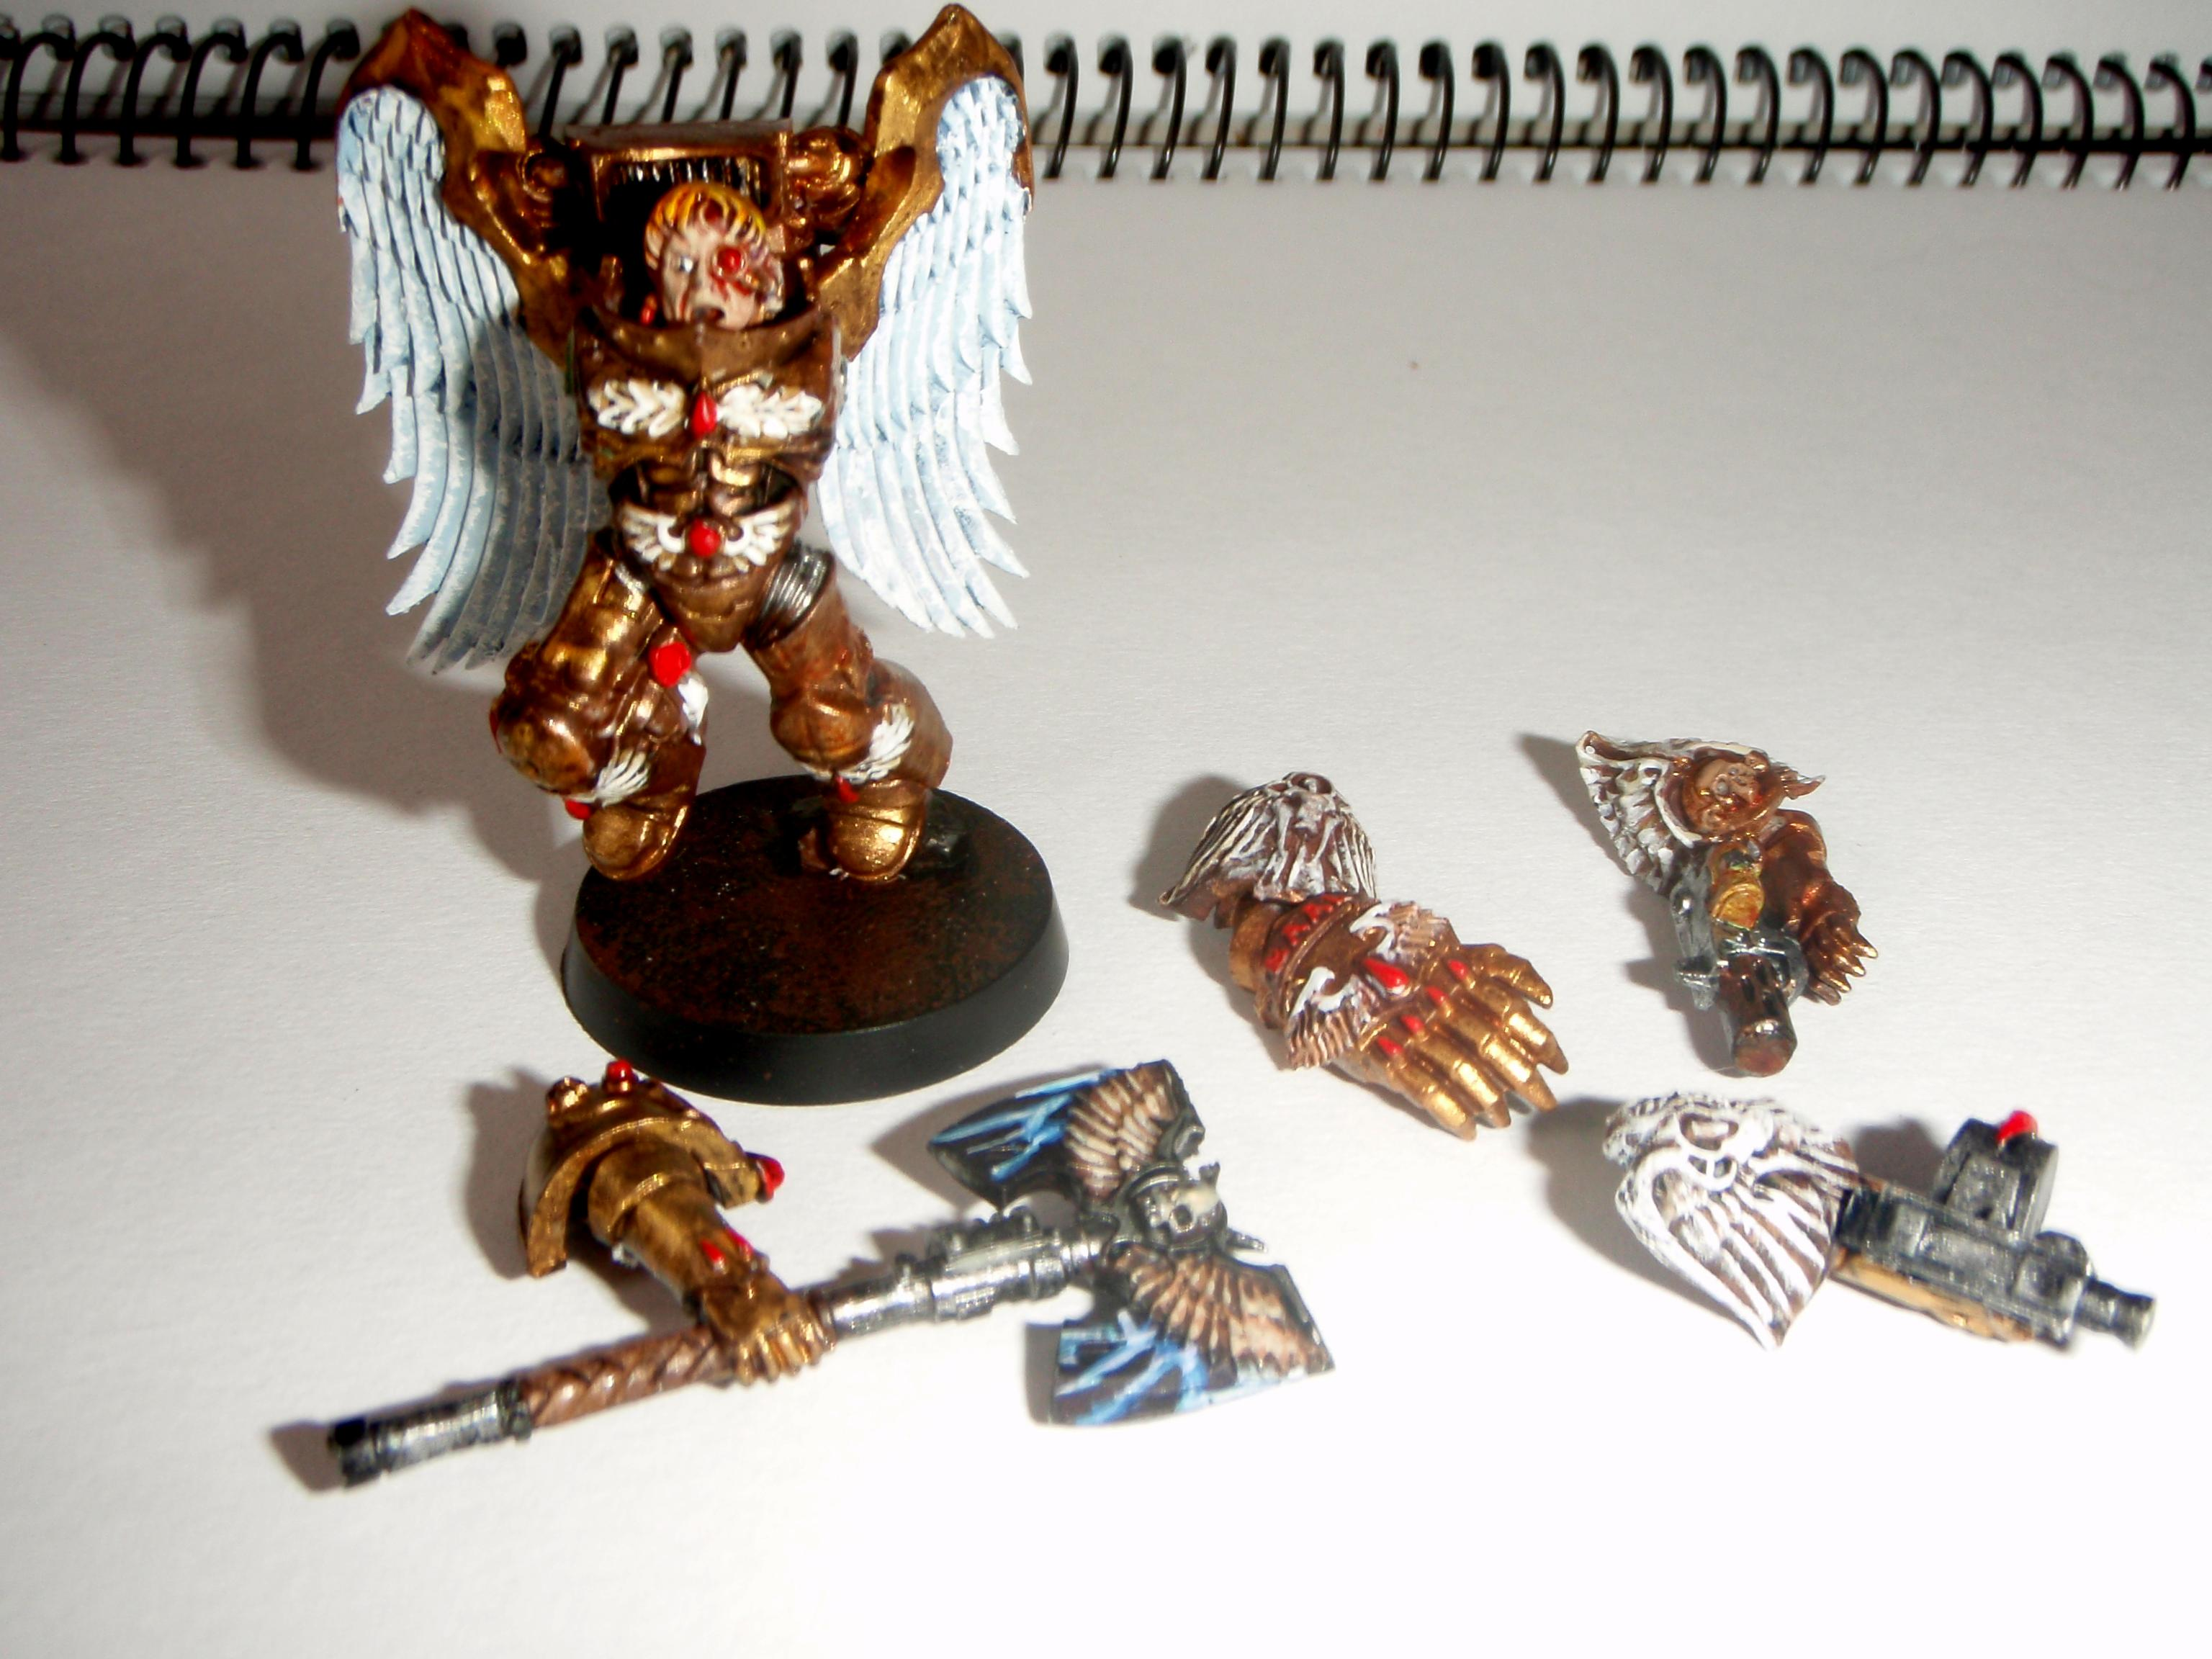 Blood Angels, Gold, Thin Your Paints, Warhammer 40,000